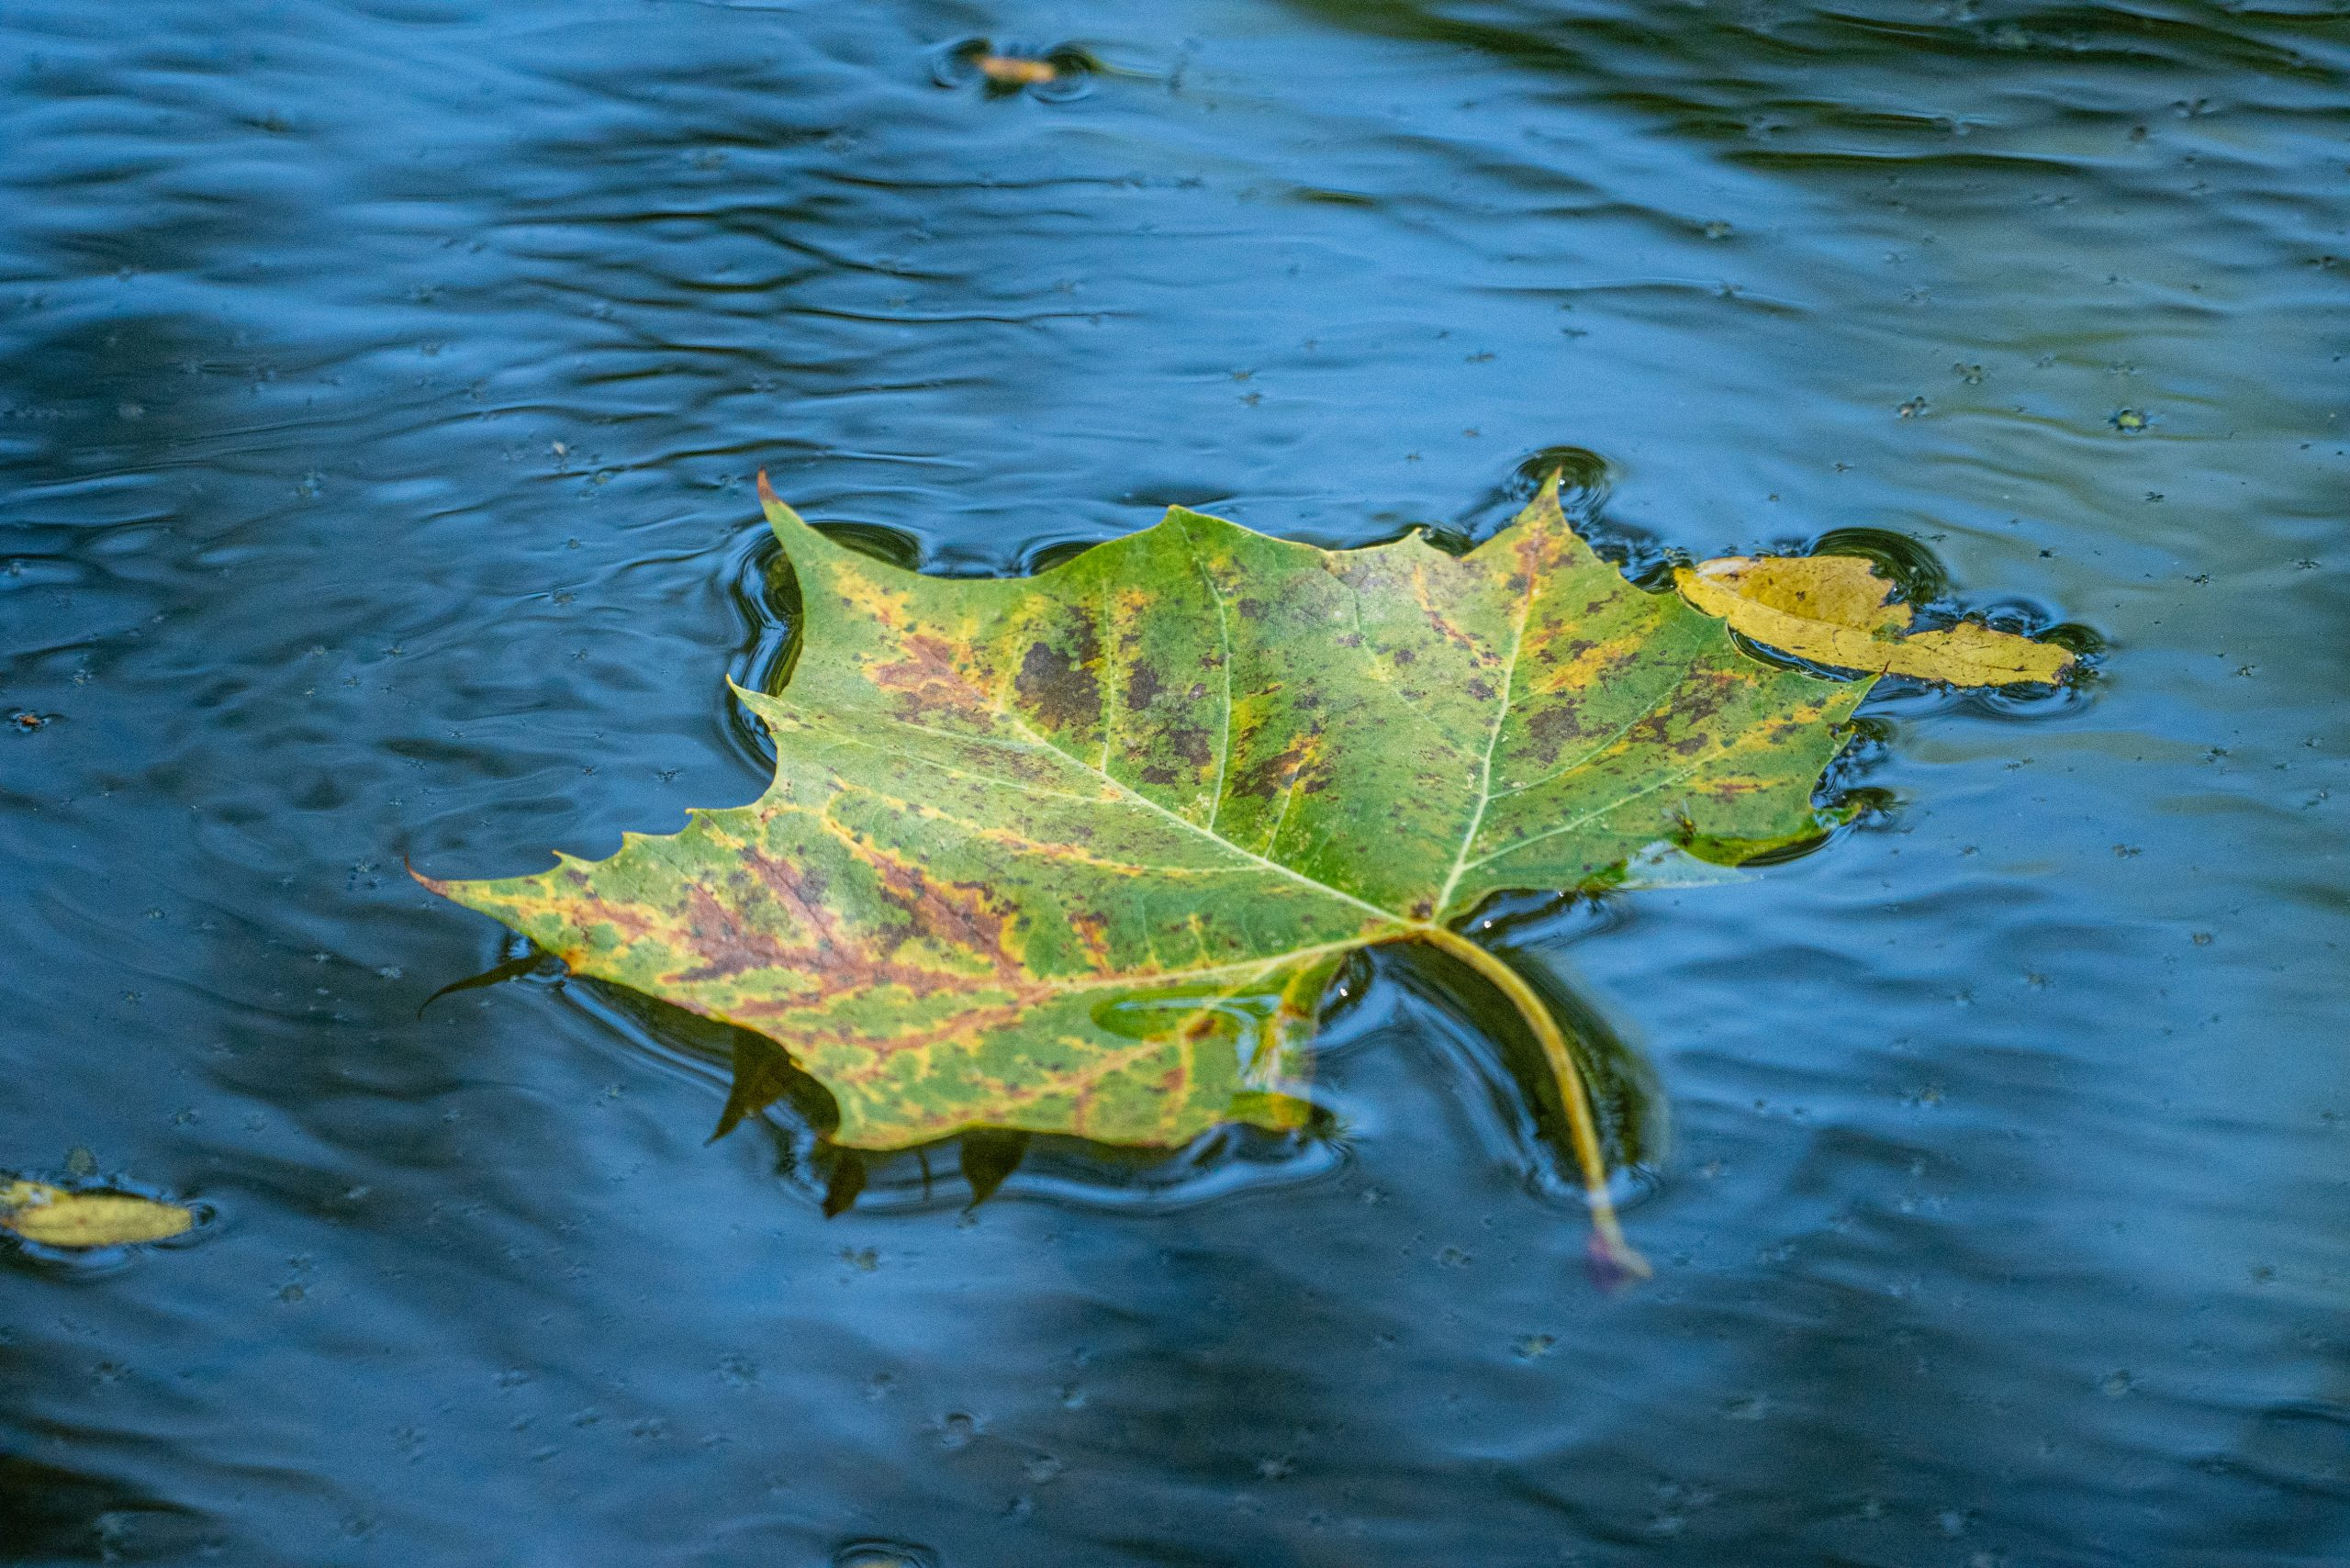 A large leaf, in the midst of changing from green to yellow, floats atop water.